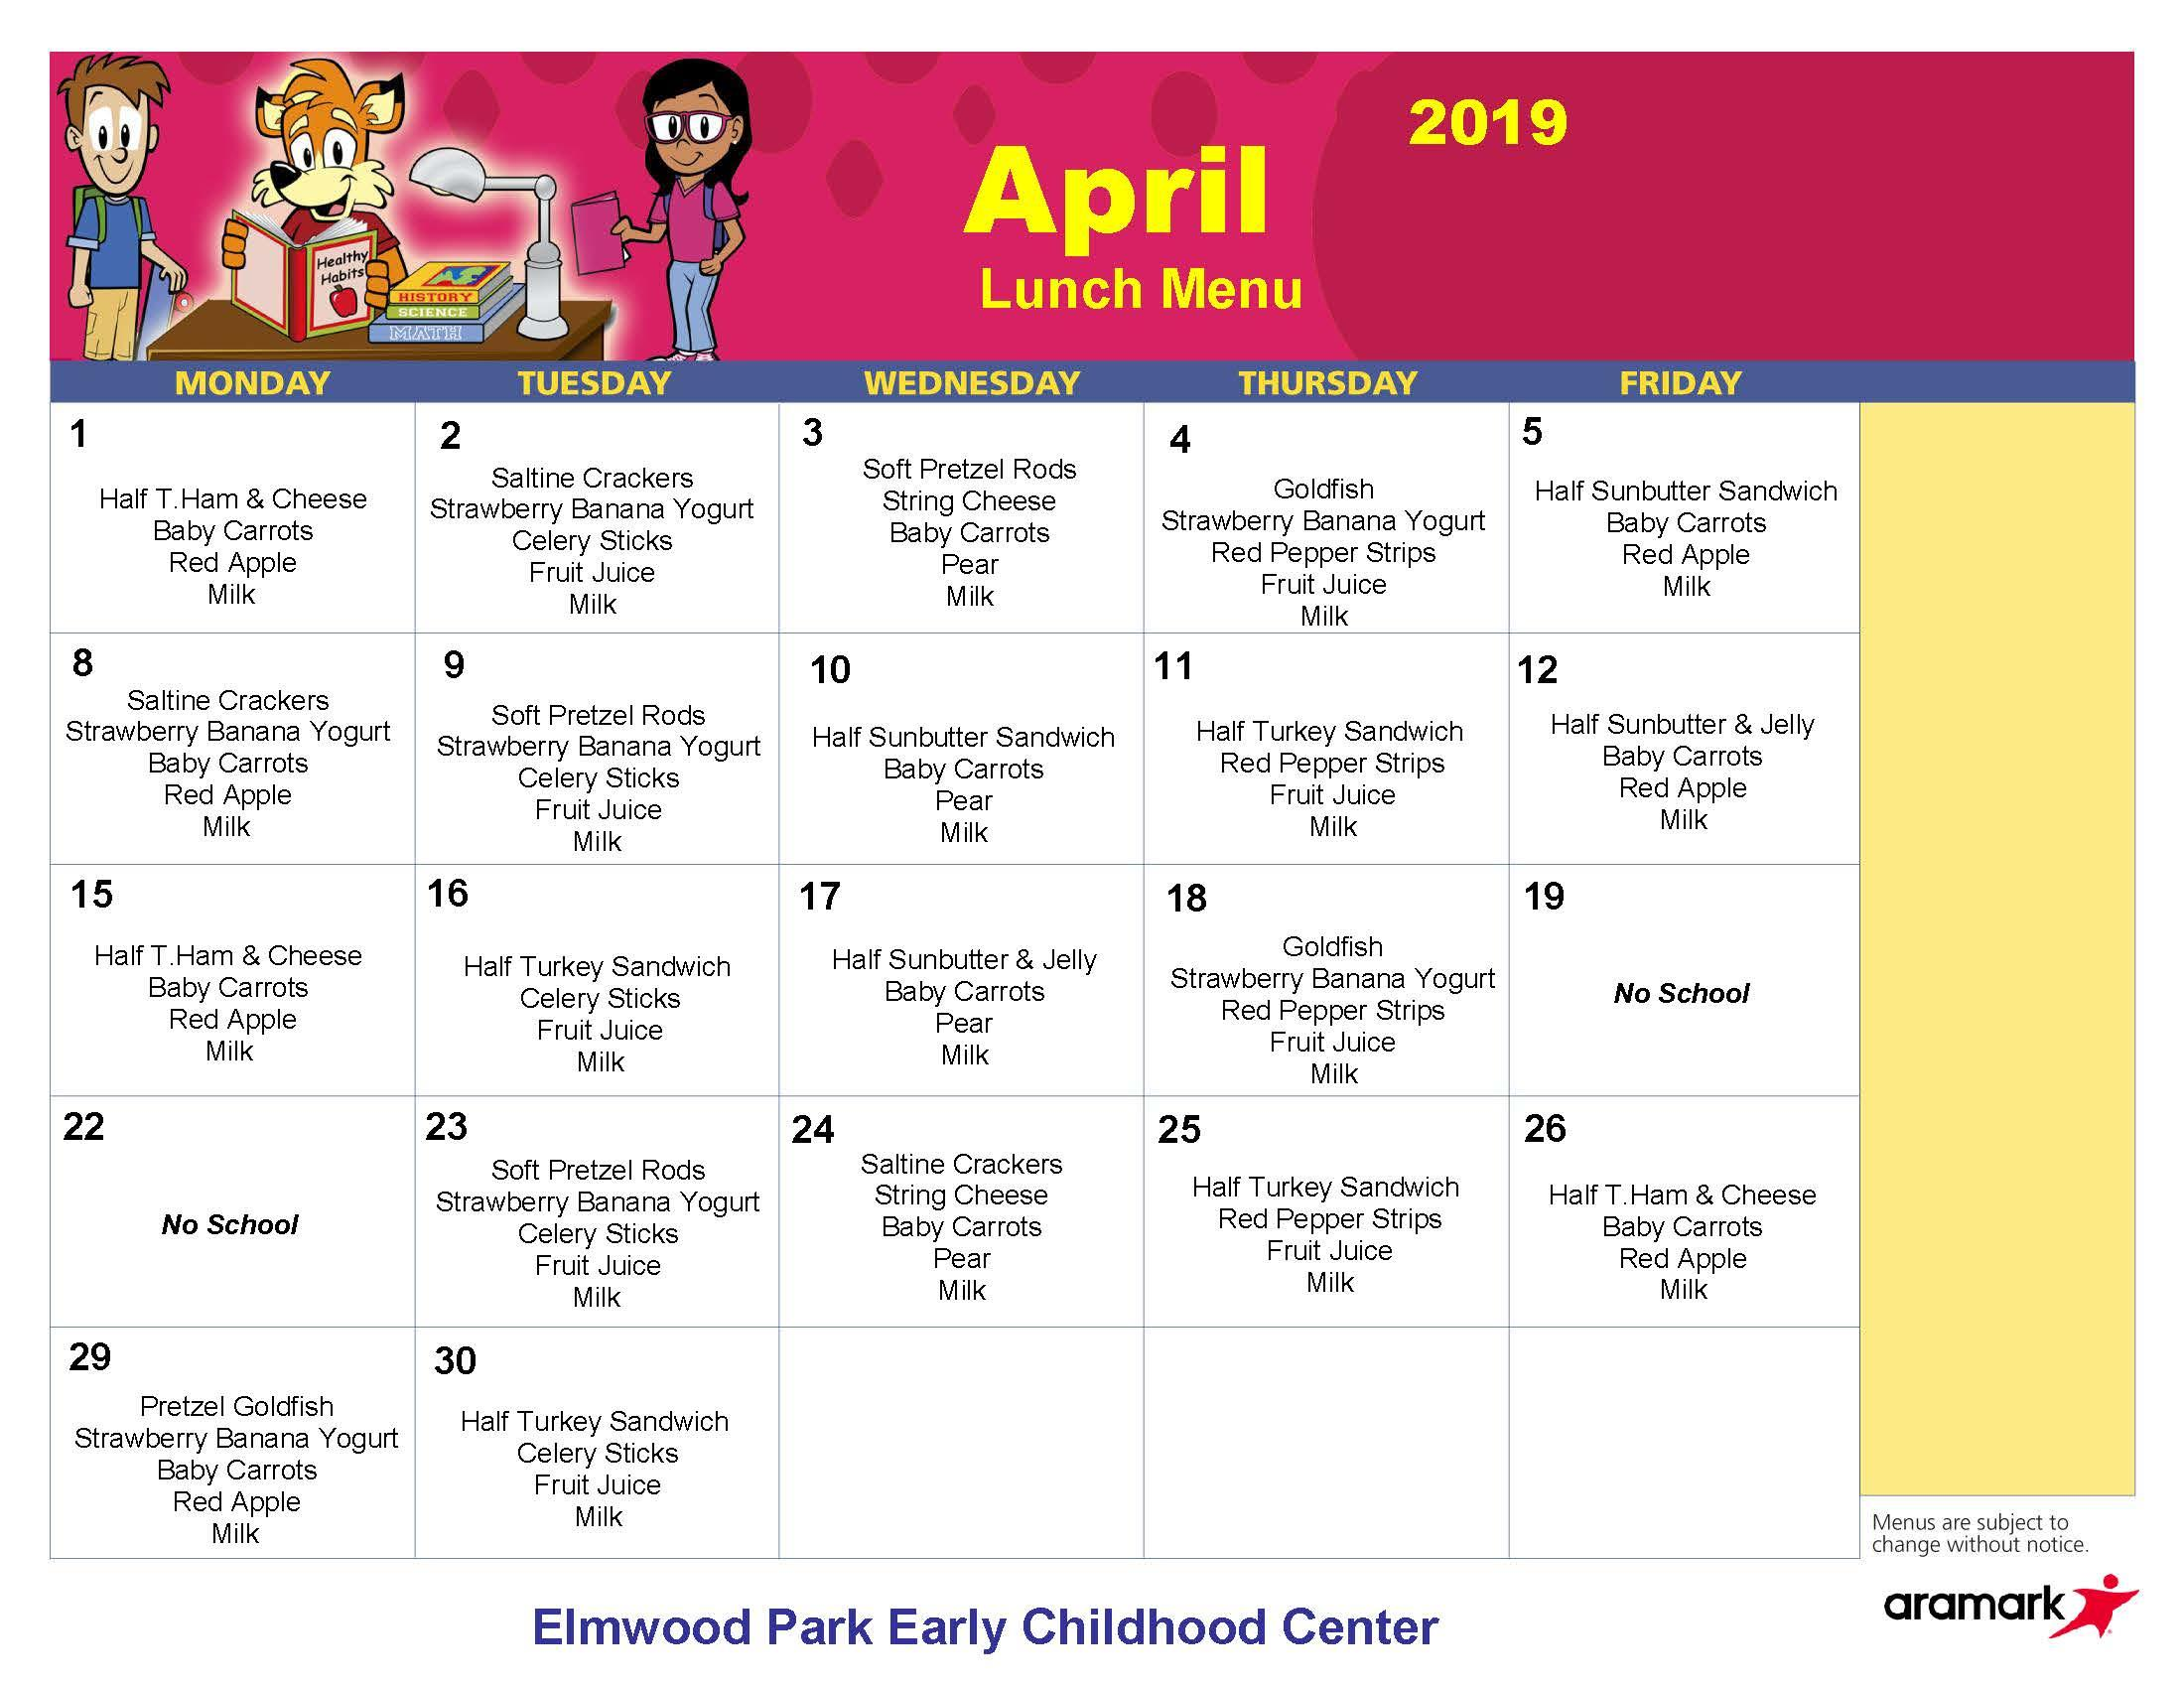 ECC lunch menu, April 2019